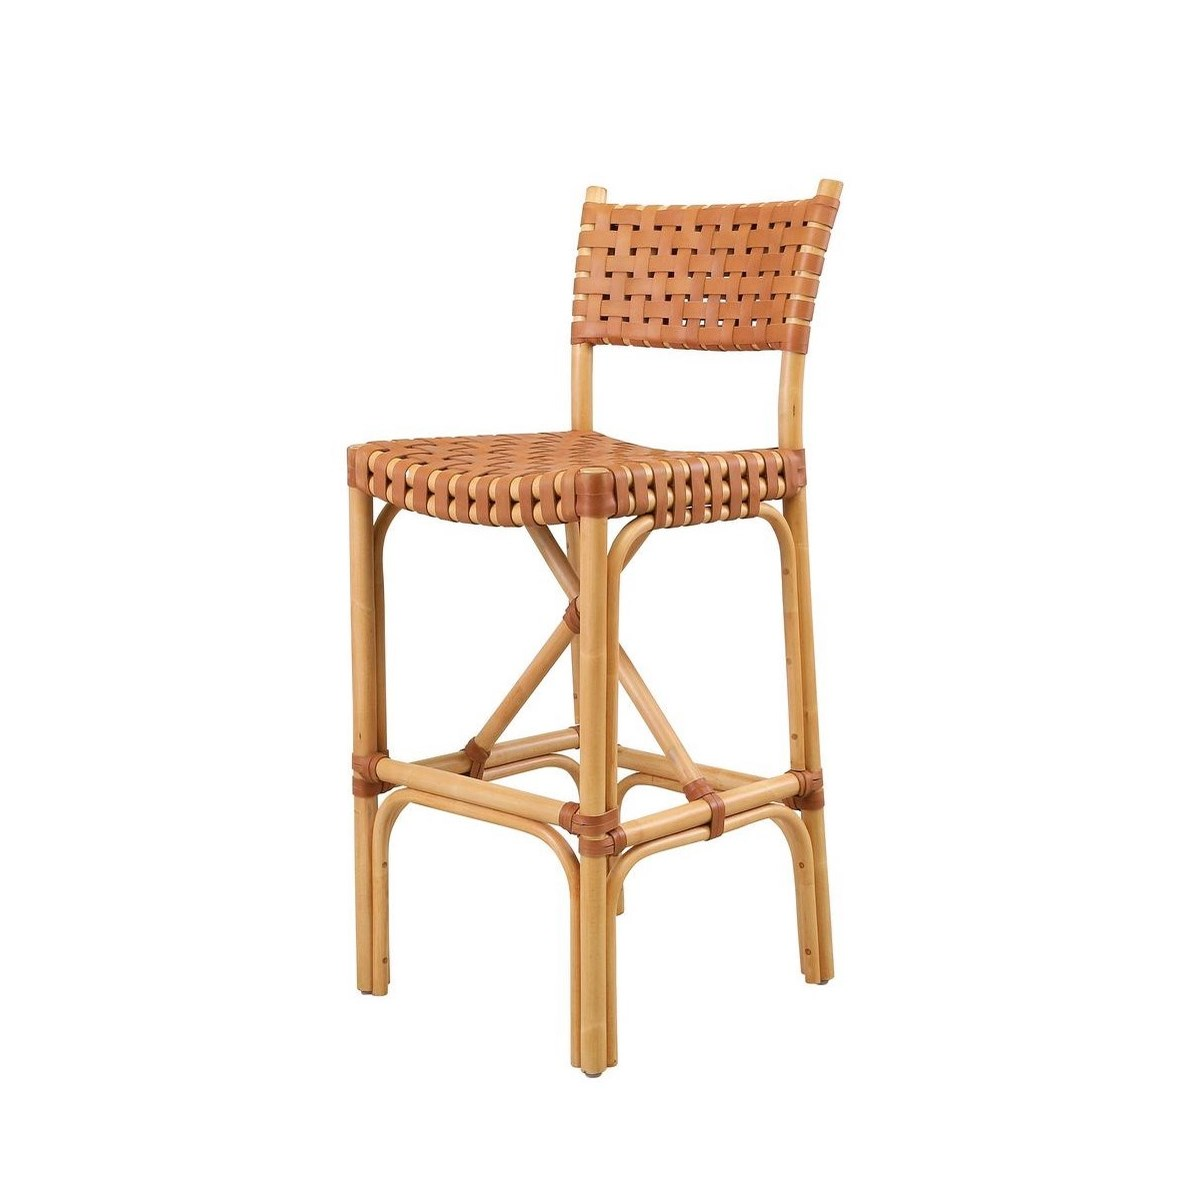 Malibu Bar Chair Frame Color - Natural  Leather Color - Brown CLOSE-OUT - 50% OFF!SOLD AS-IS  ~